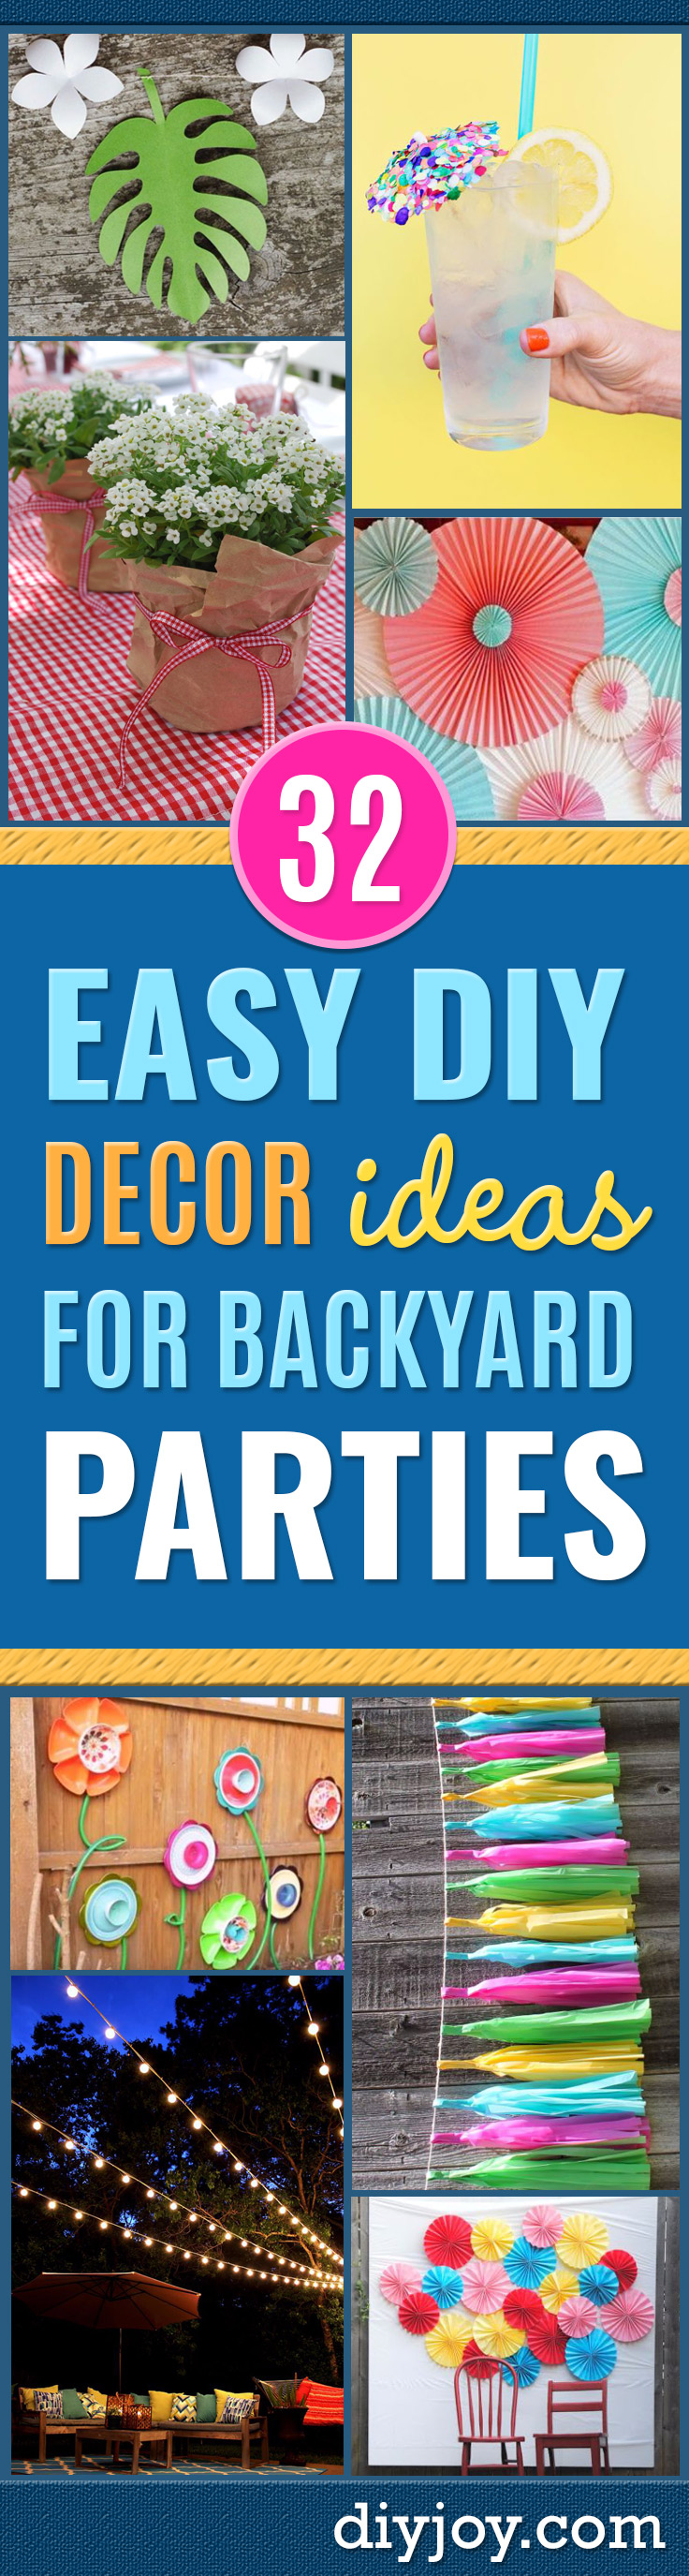 DIY Backyard Party Decor Ideas - Cool Ideas for Decorations for Parties - Easy and Cheap Crafts for Summer Barbecues and Family Get Togethers, Swimming and Pool Party Fun - Step by Step Tutorials For Banners, Table Decor, Serving Ideas and Mason Jar Crafts